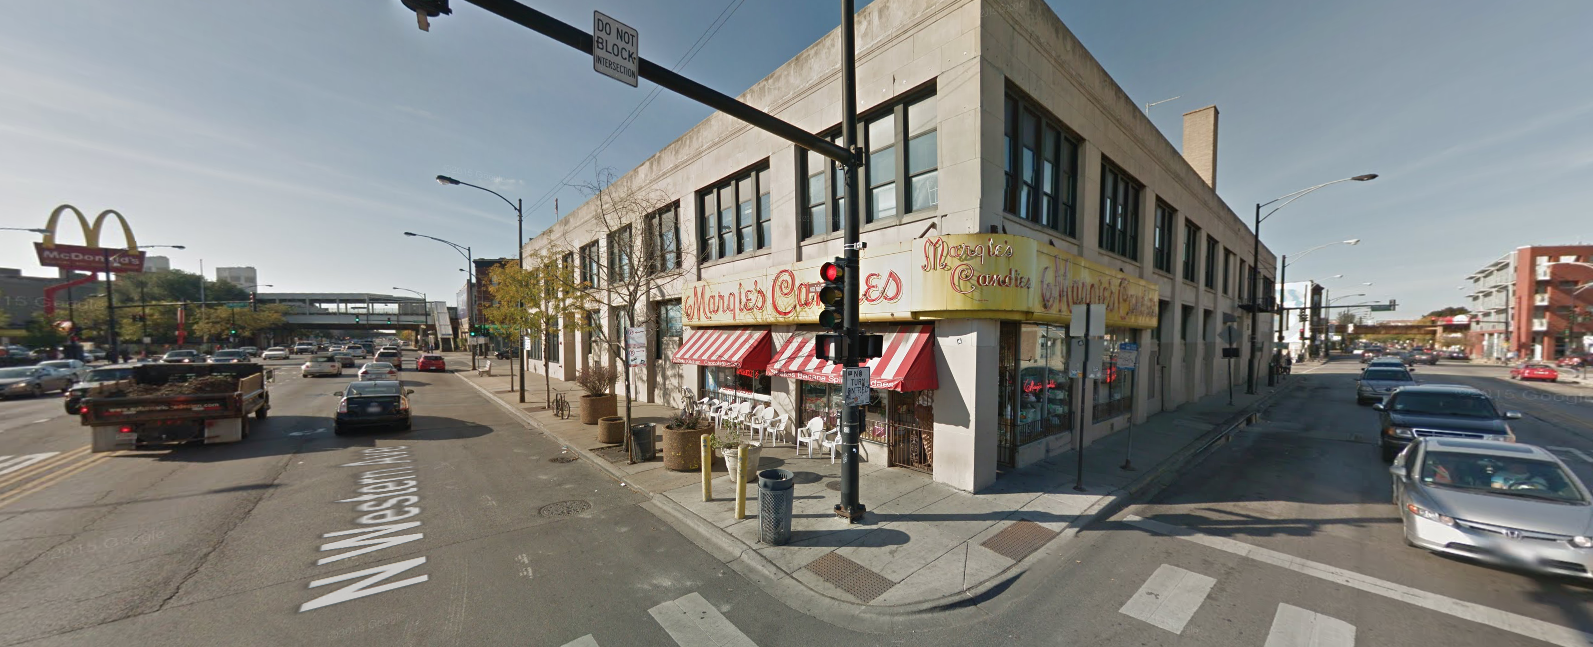 Margie's Candies at 1960 North Western Avenue (Image via Google Streetview)